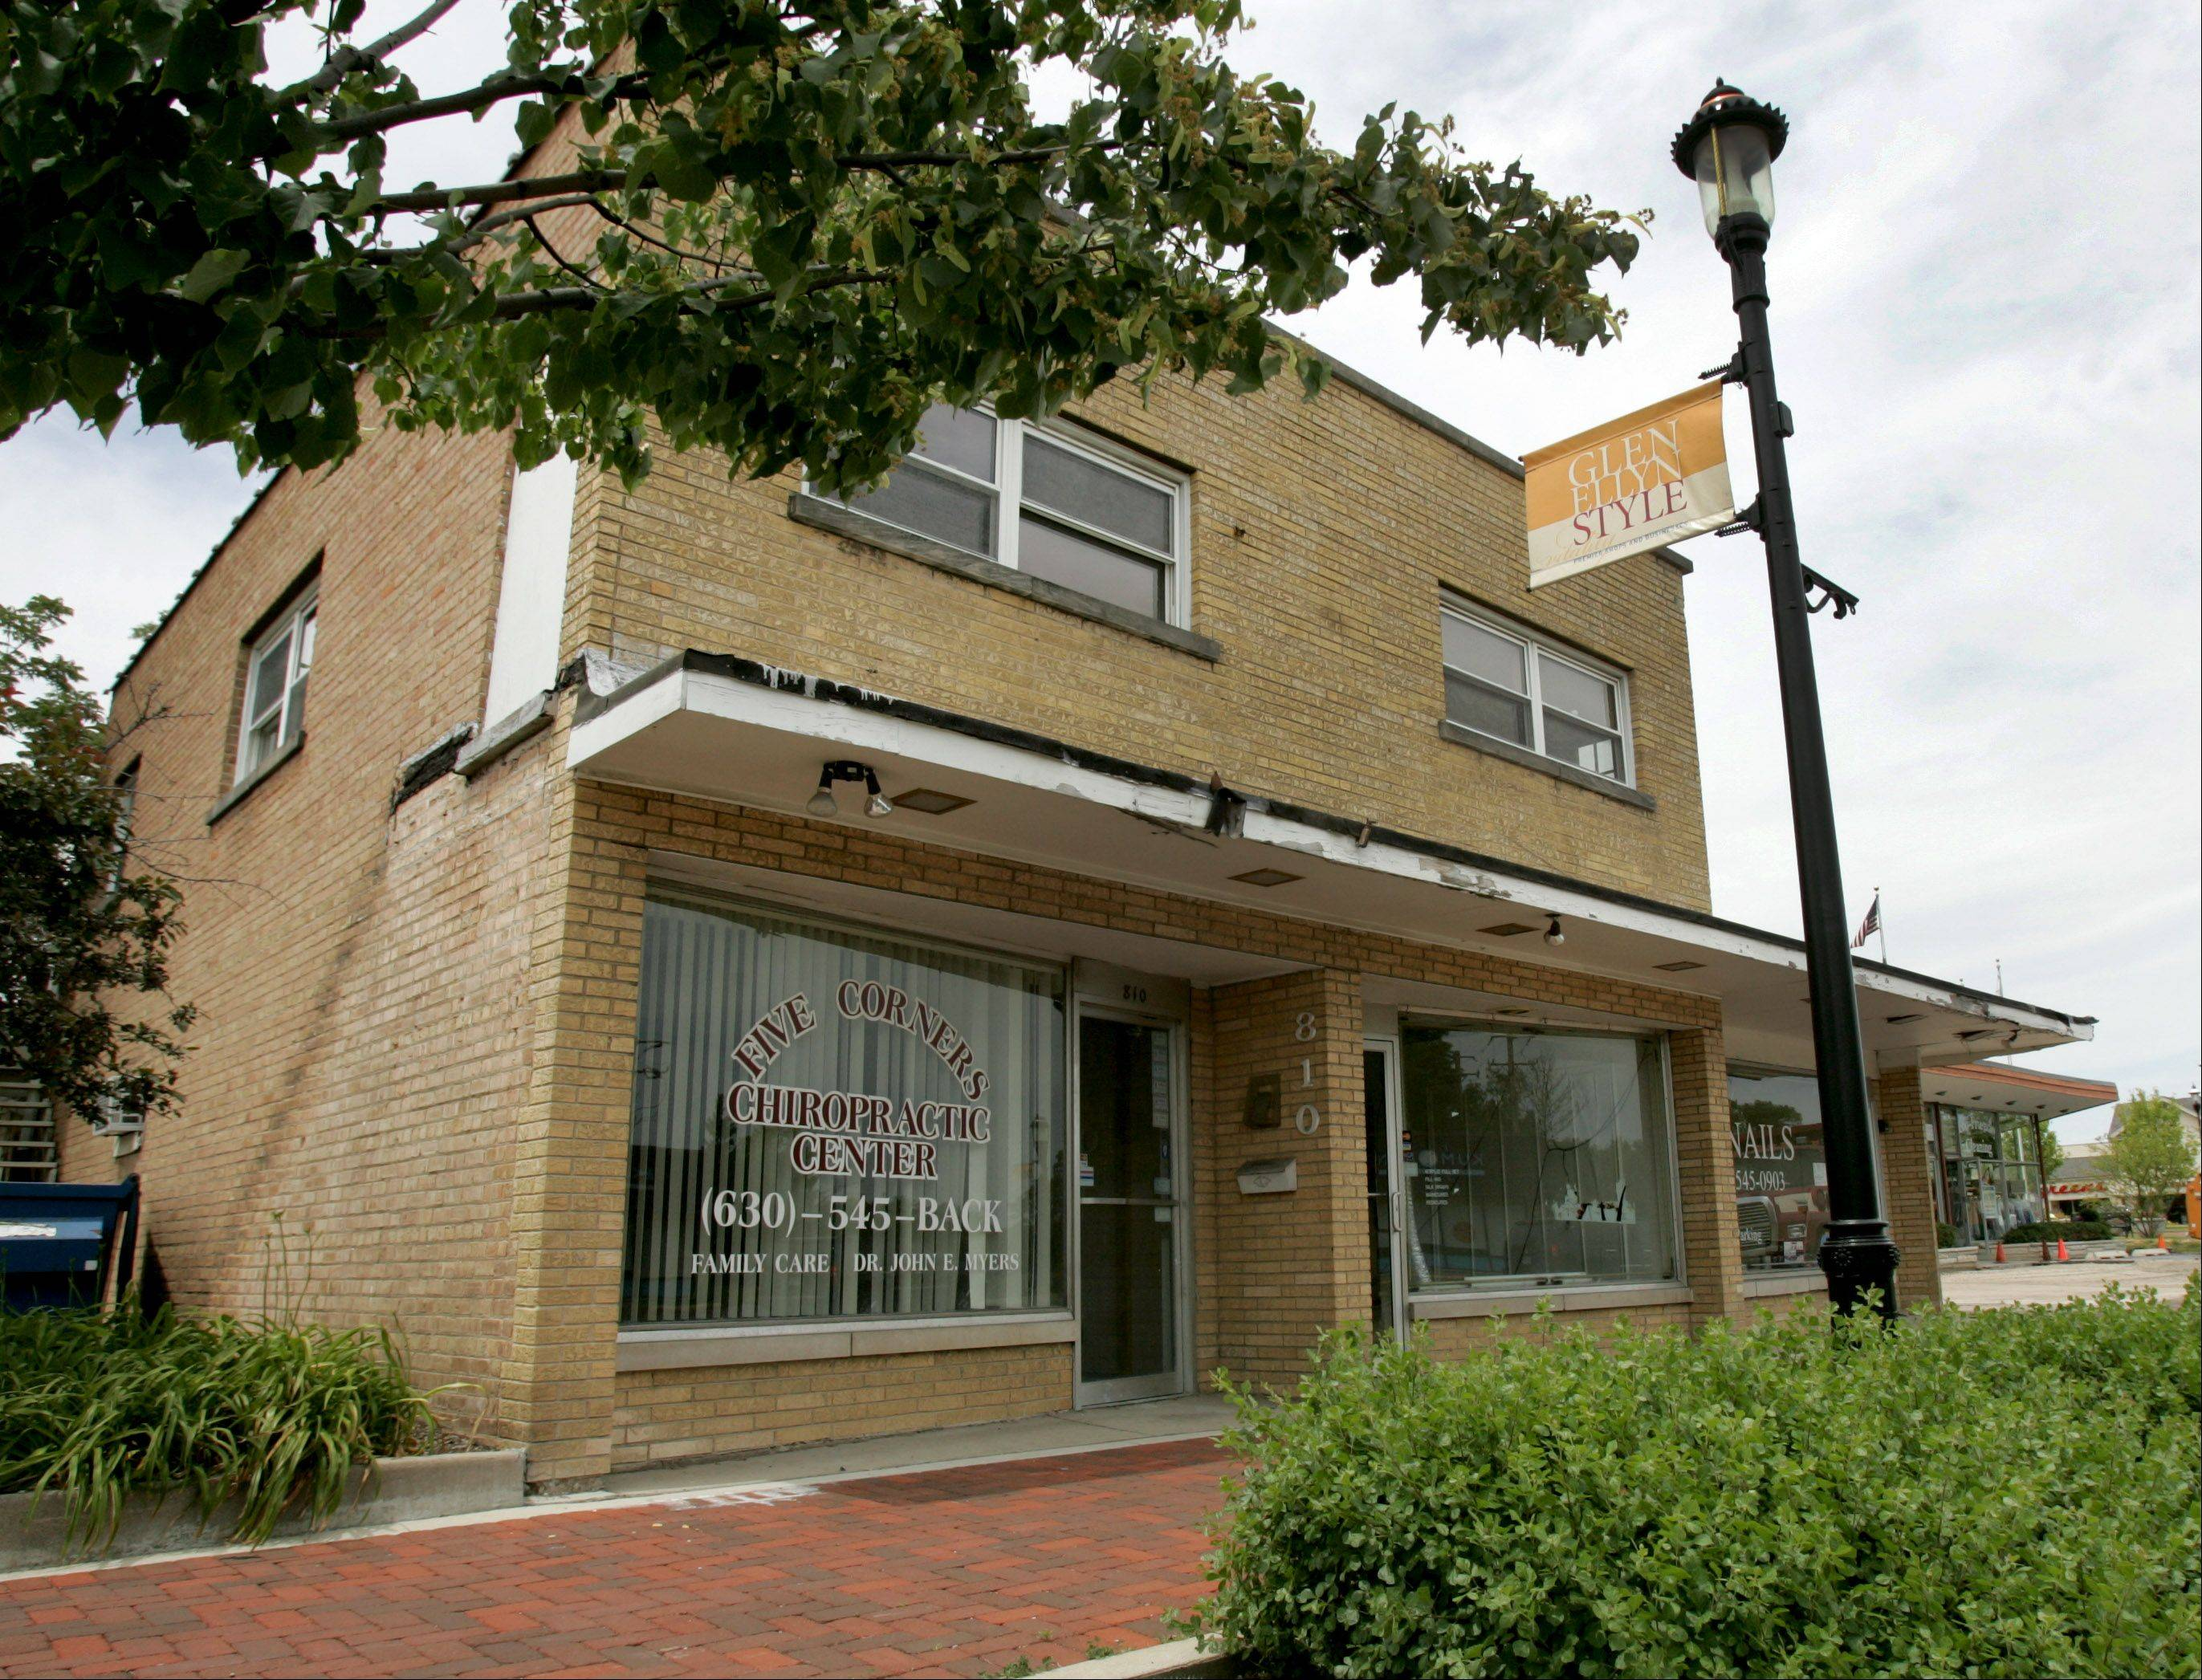 The Glen Ellyn Chamber of Commerce will be moving into a village-owned building at 810 N. Main St. this fall.